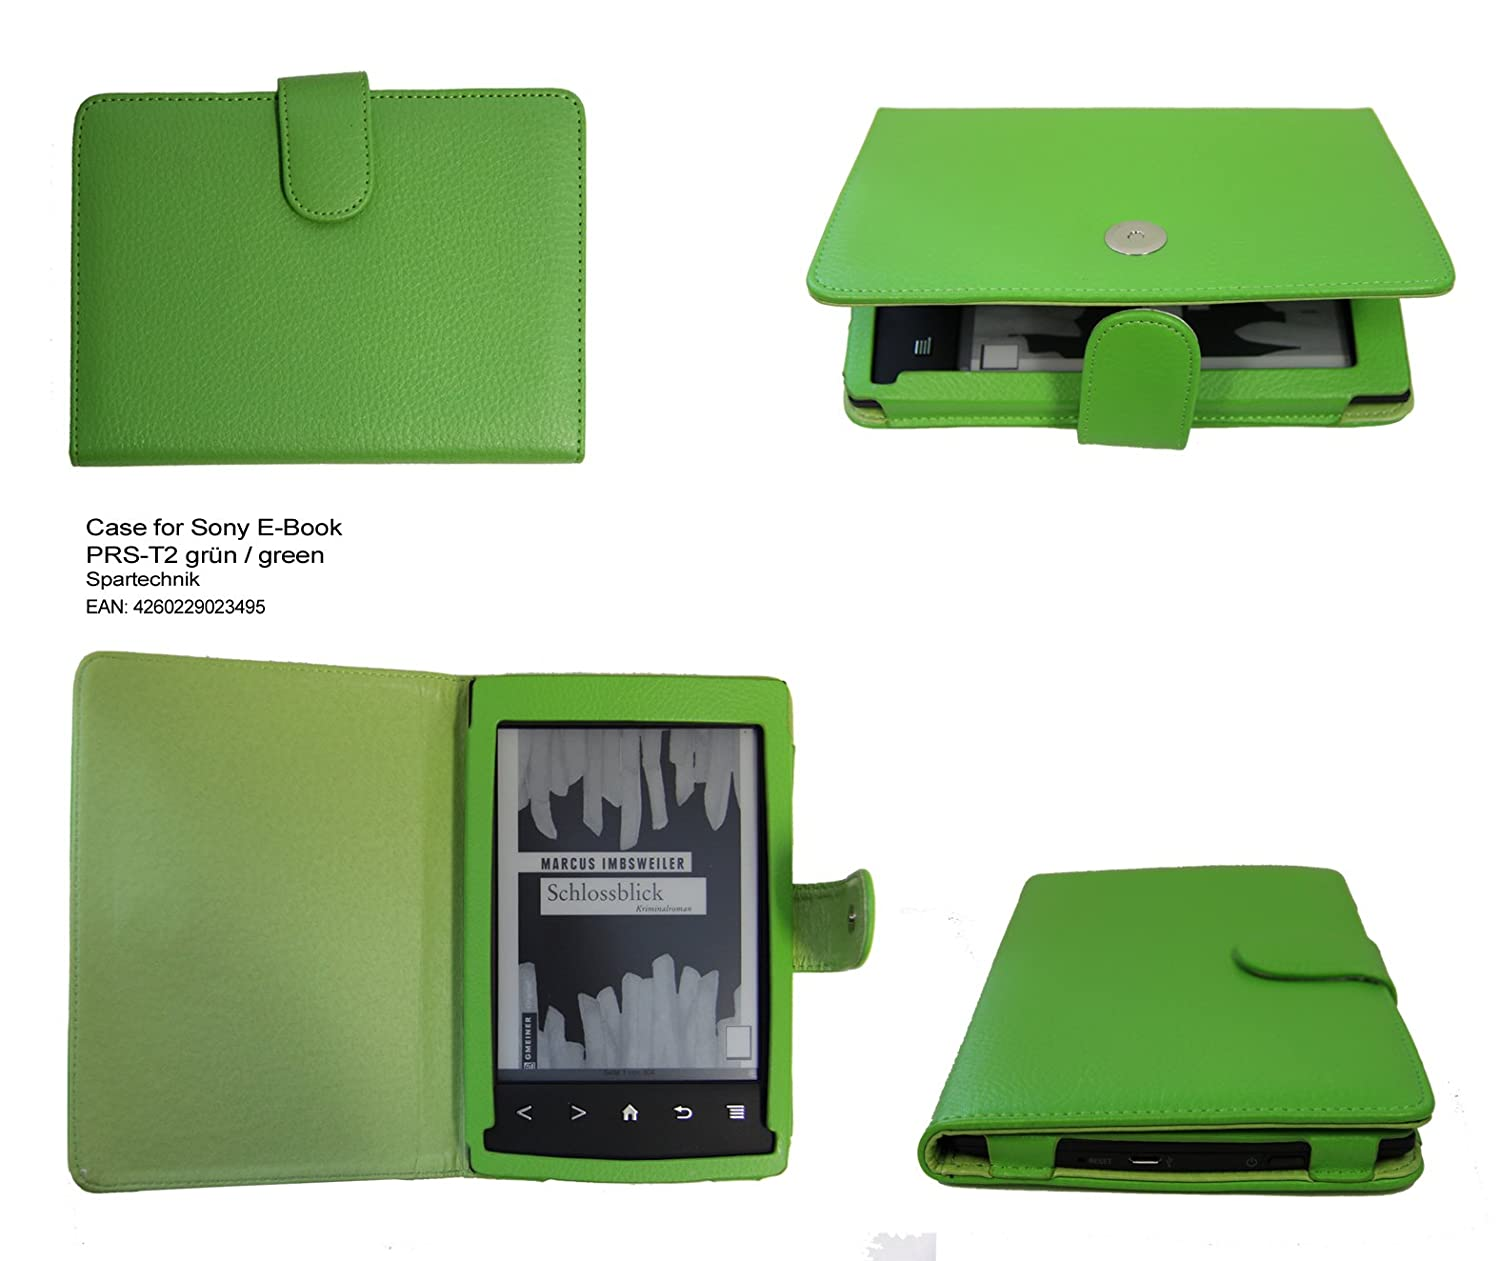 Spartechnik - Funda para e-reader Sony PRS-T2, color verde: Amazon ...